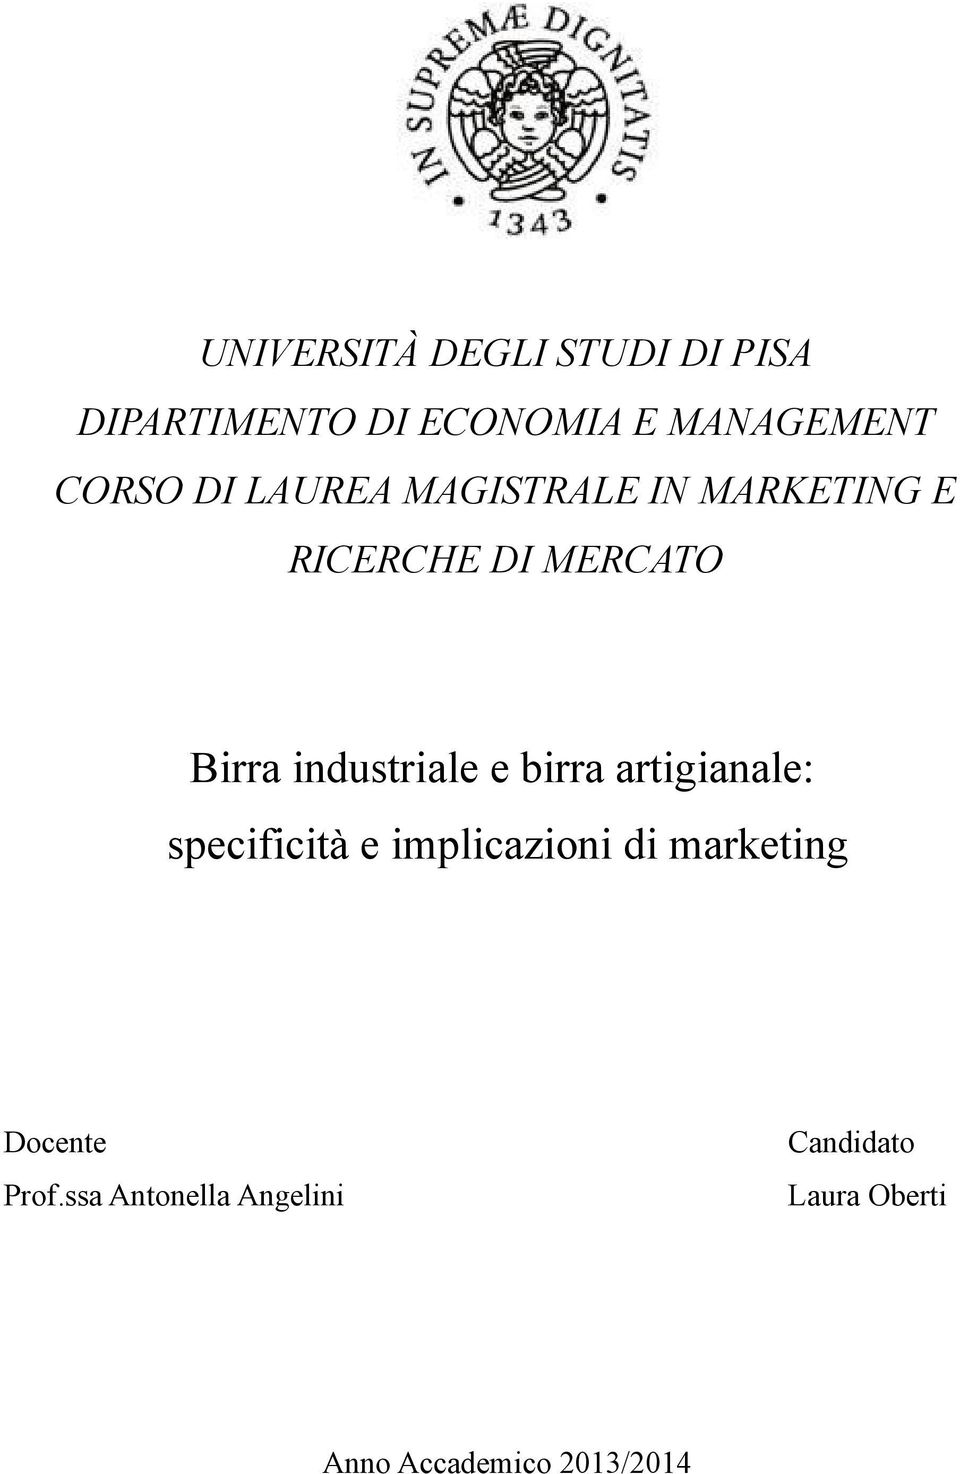 industriale e birra artigianale: specificità e implicazioni di marketing